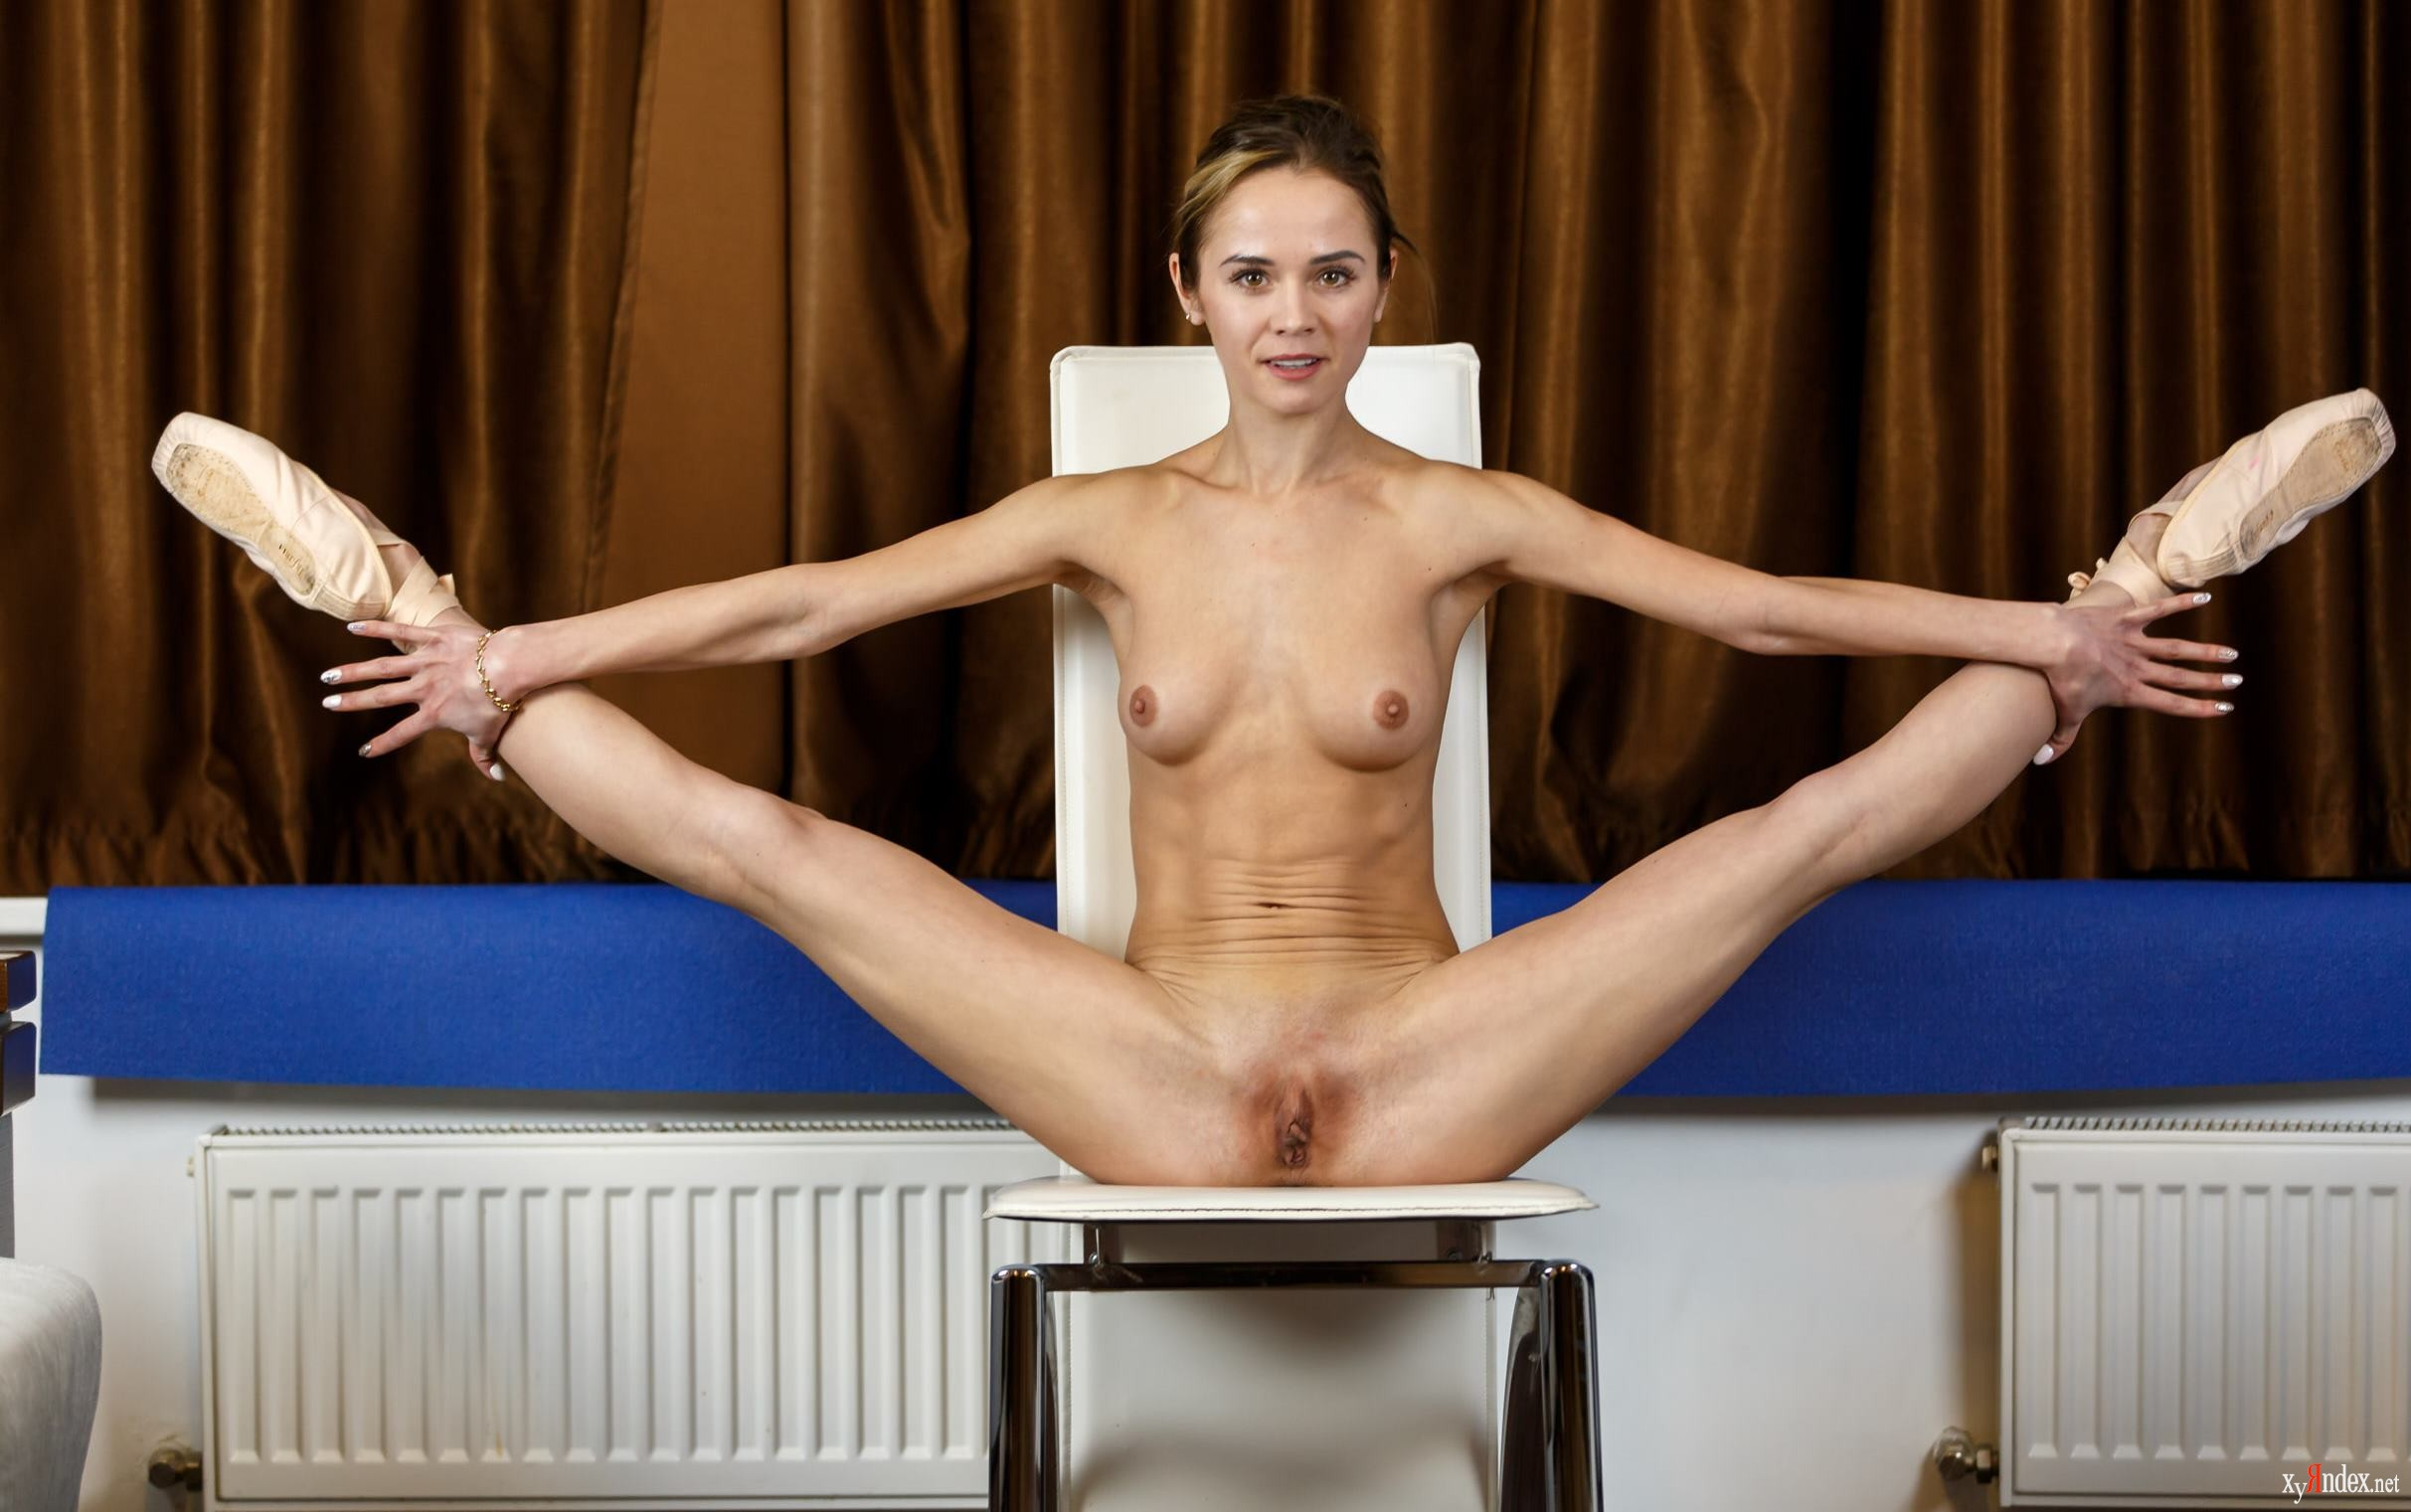 flexy-ballerina-nude-eboneygirls-porn-videos